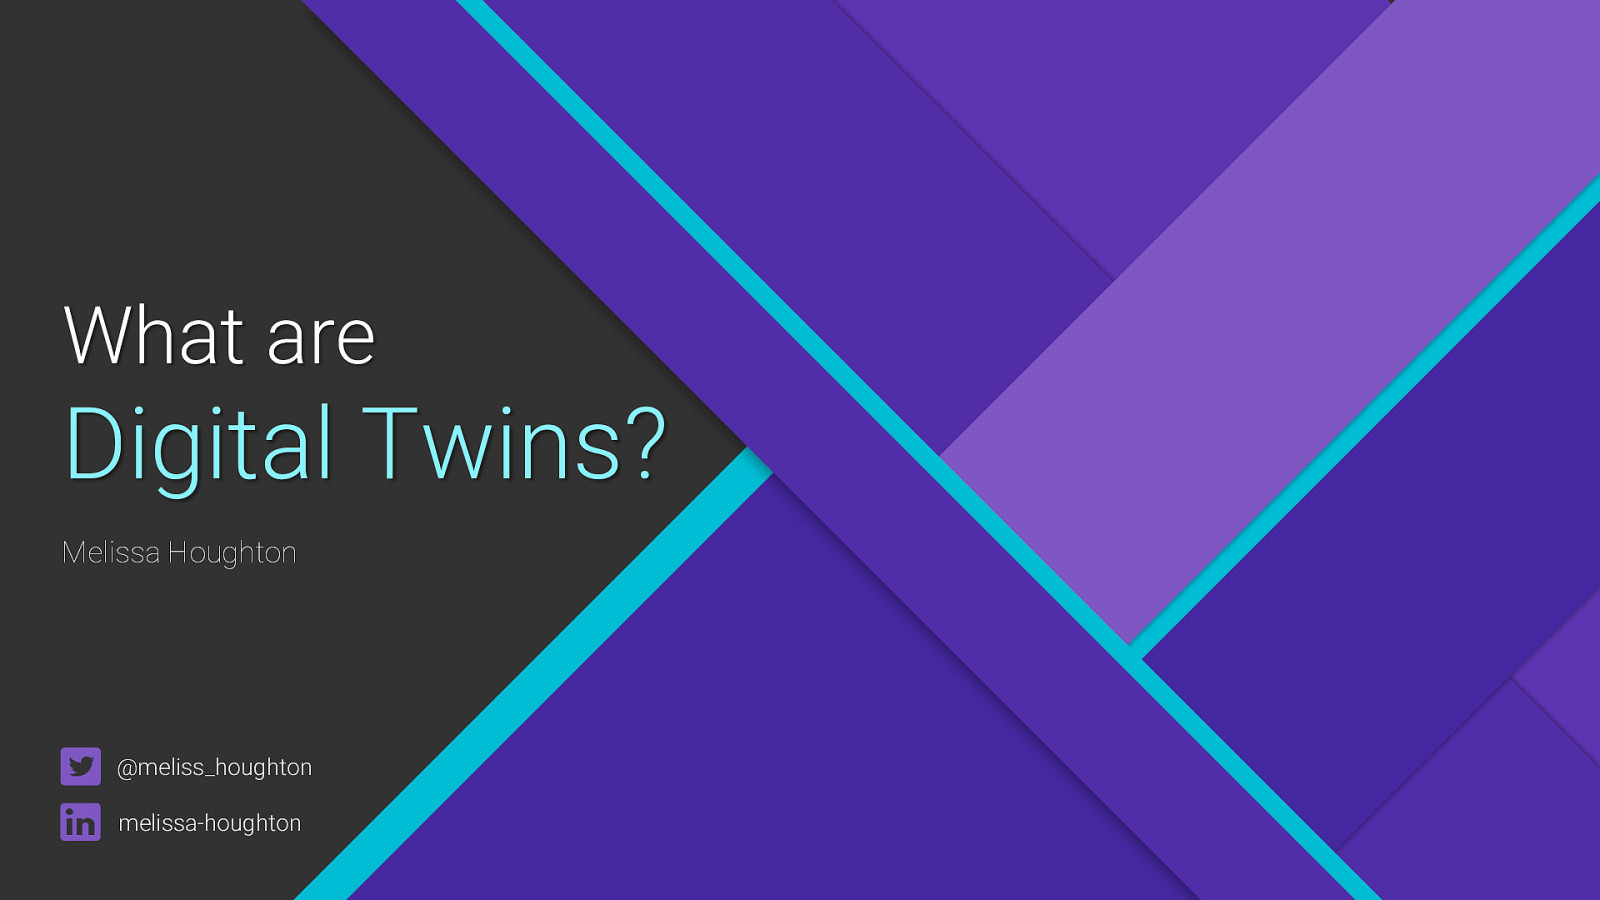 What are Digital Twins?